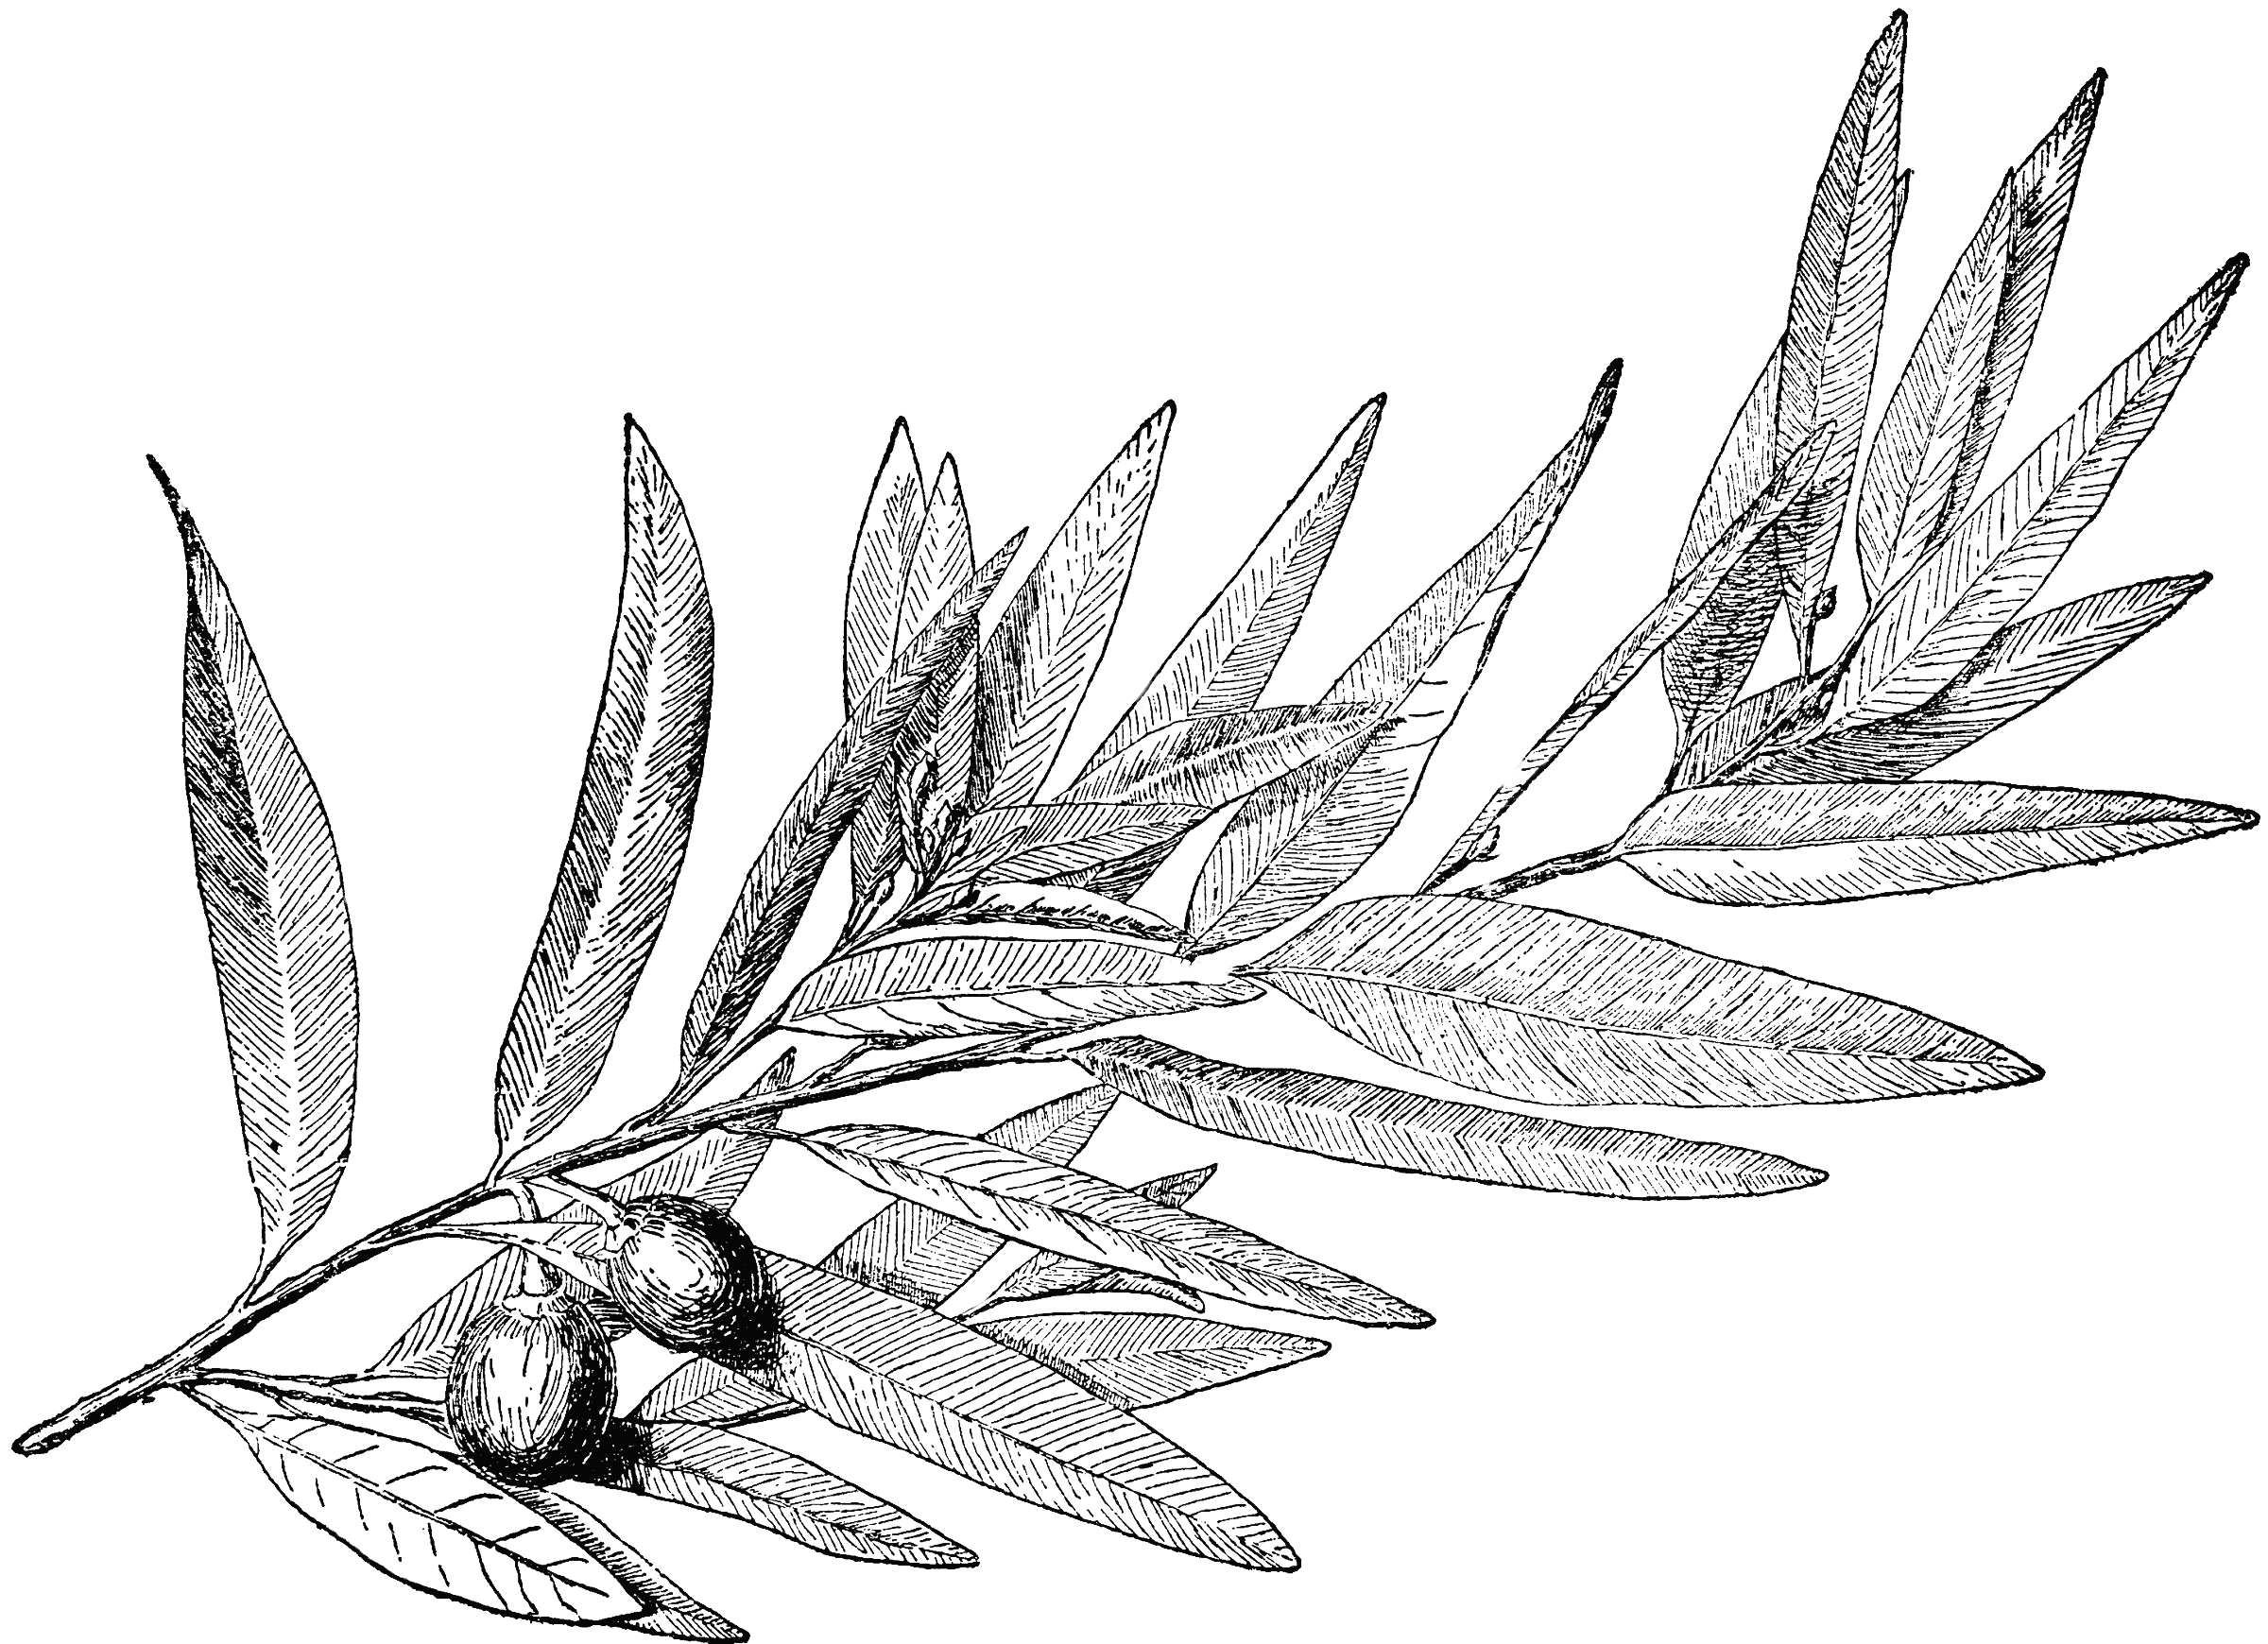 Laurel leaves, a symbol of honor in ancient Greece.